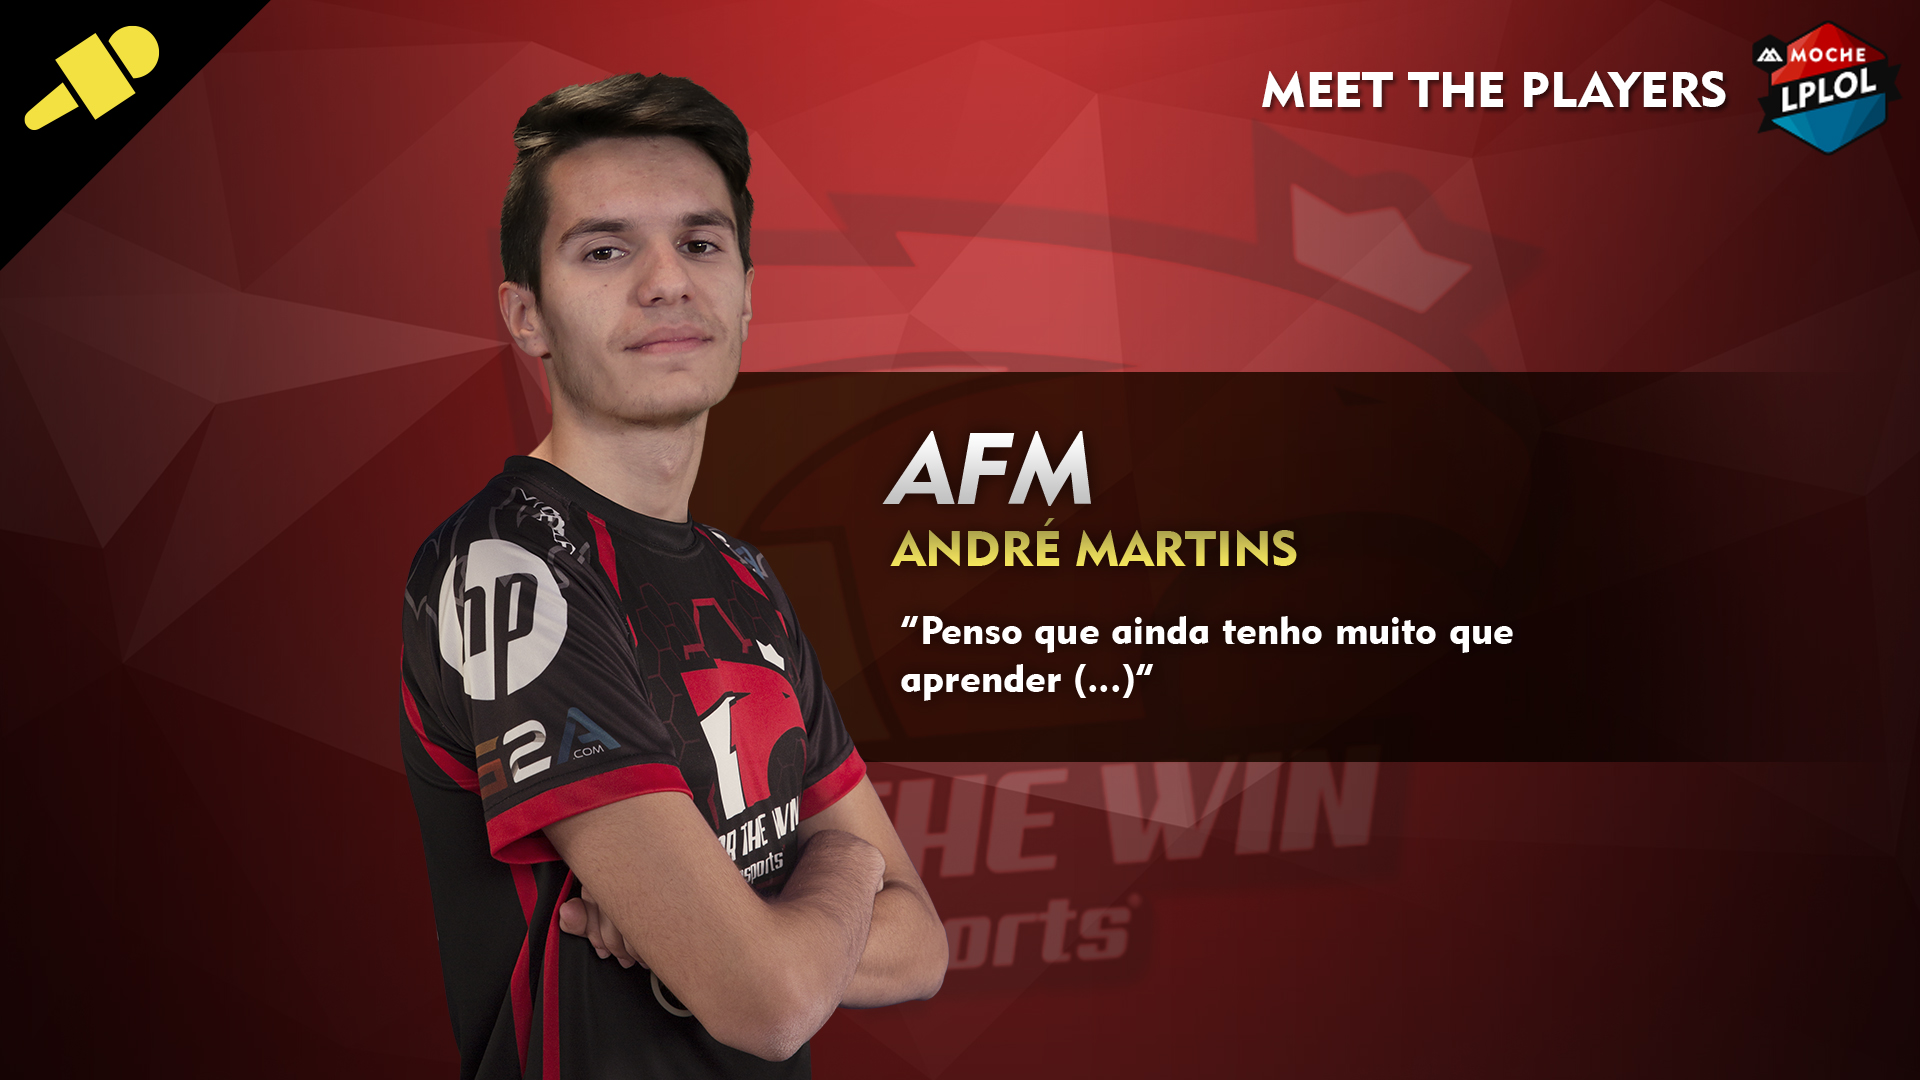 Meet The Players: Afm